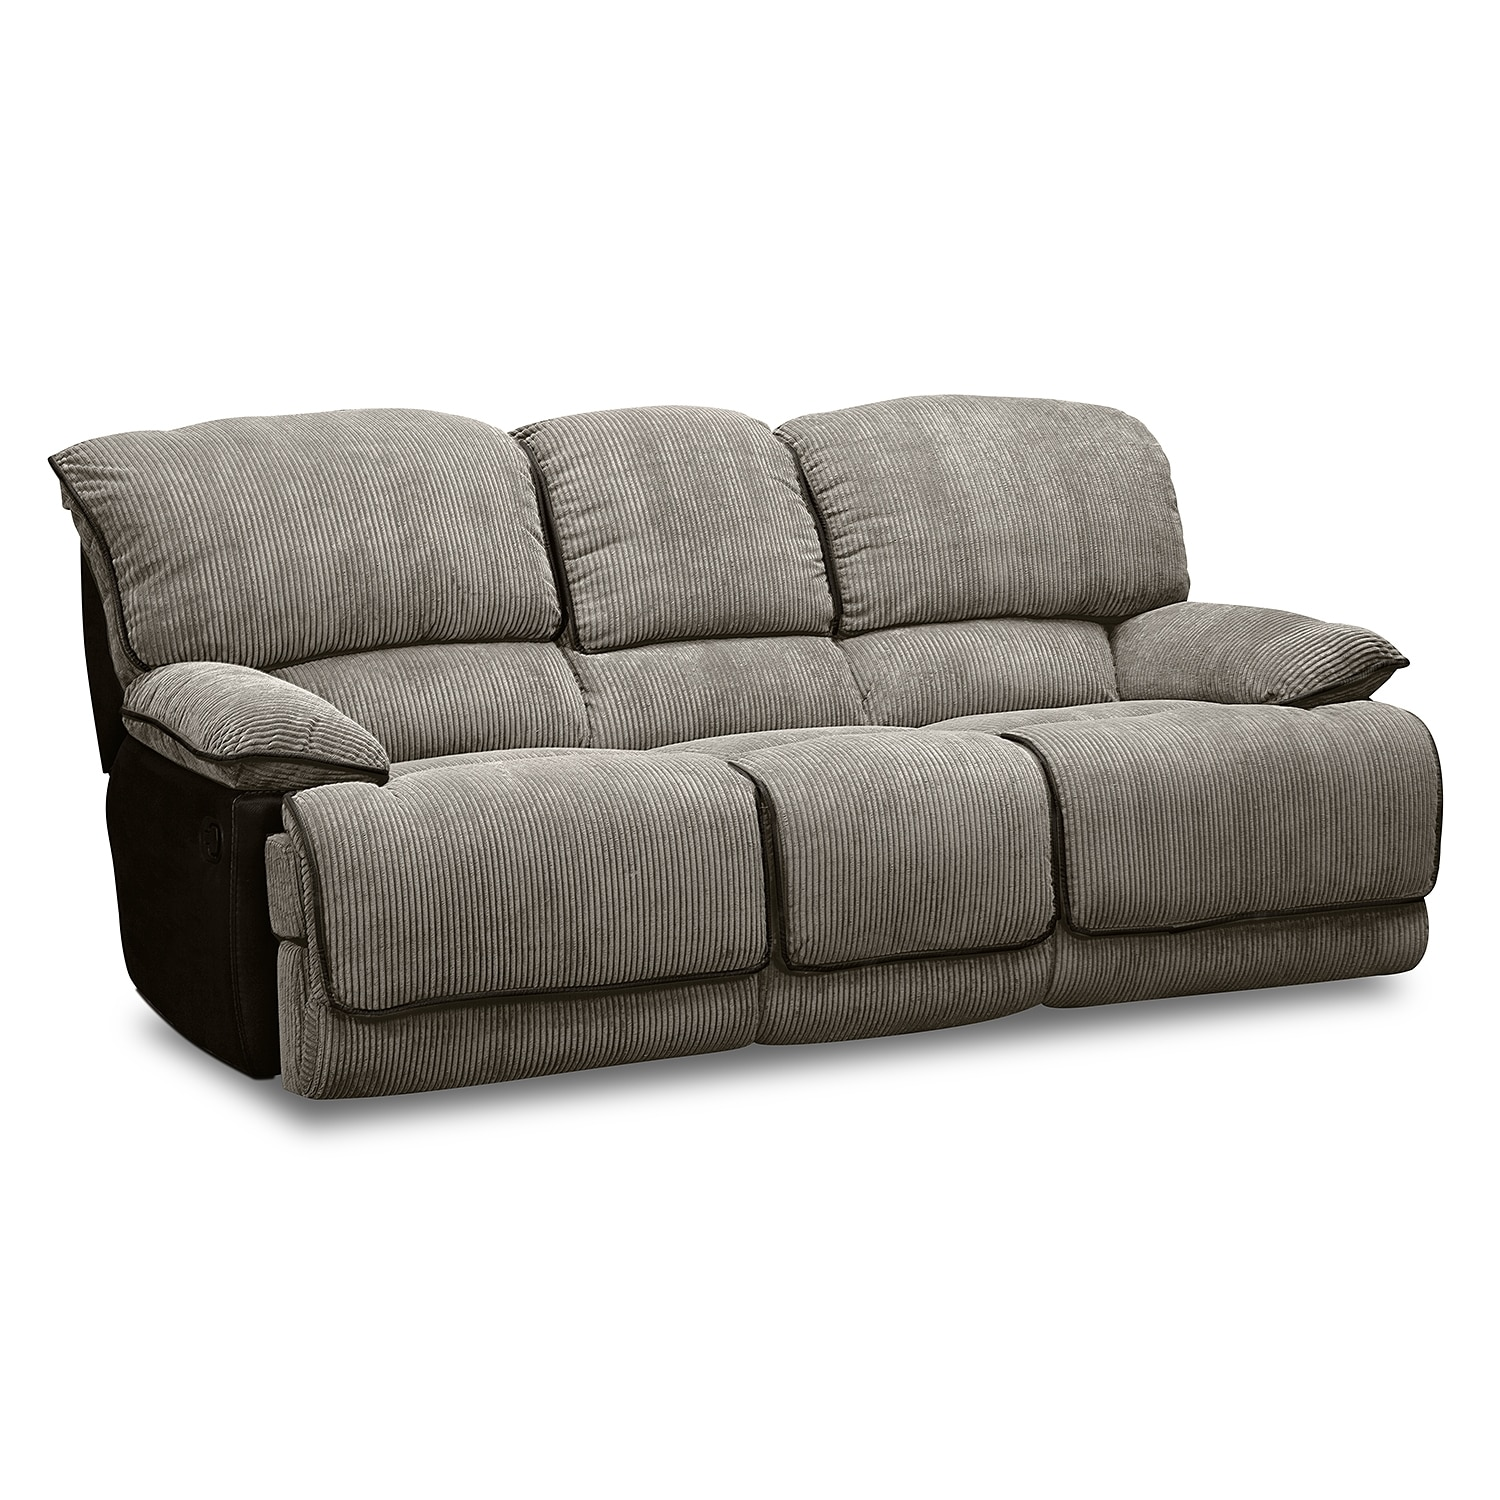 Hover to zoom  sc 1 st  Value City Furniture & Laguna Dual Reclining Sofa - Steel | Value City Furniture islam-shia.org